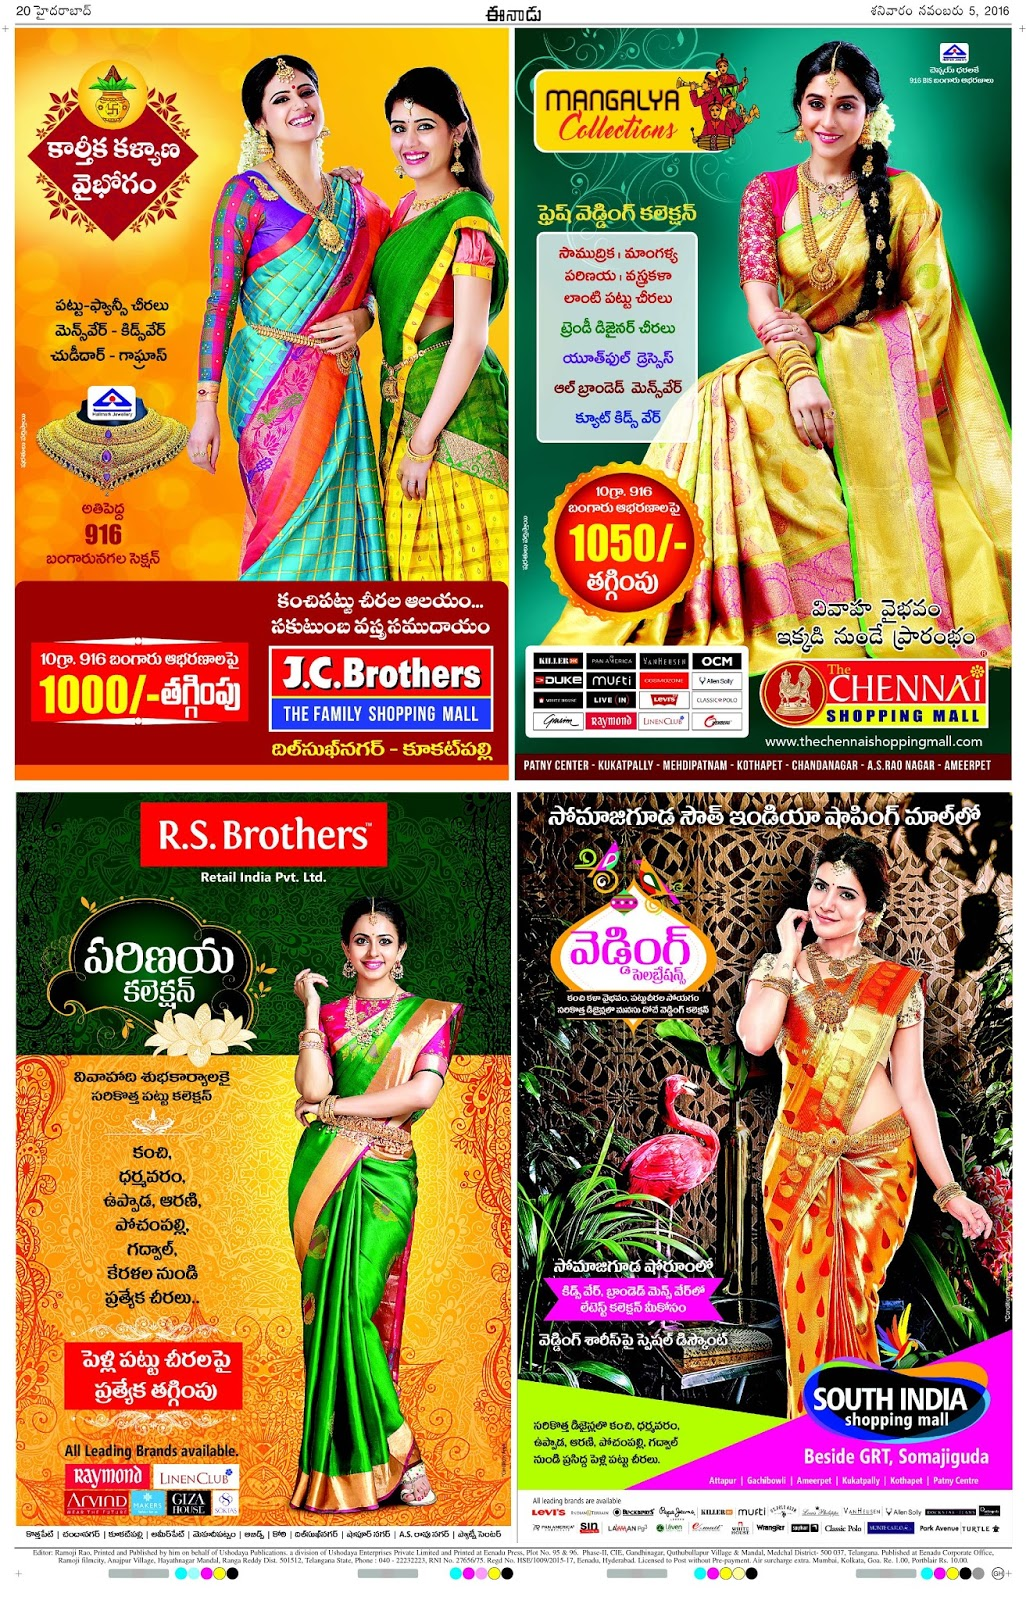 Wedding celebrations started at Chennai shopping mall, J.C brothers, R.S brothers, South India shopping mall | November 2016 discount offers